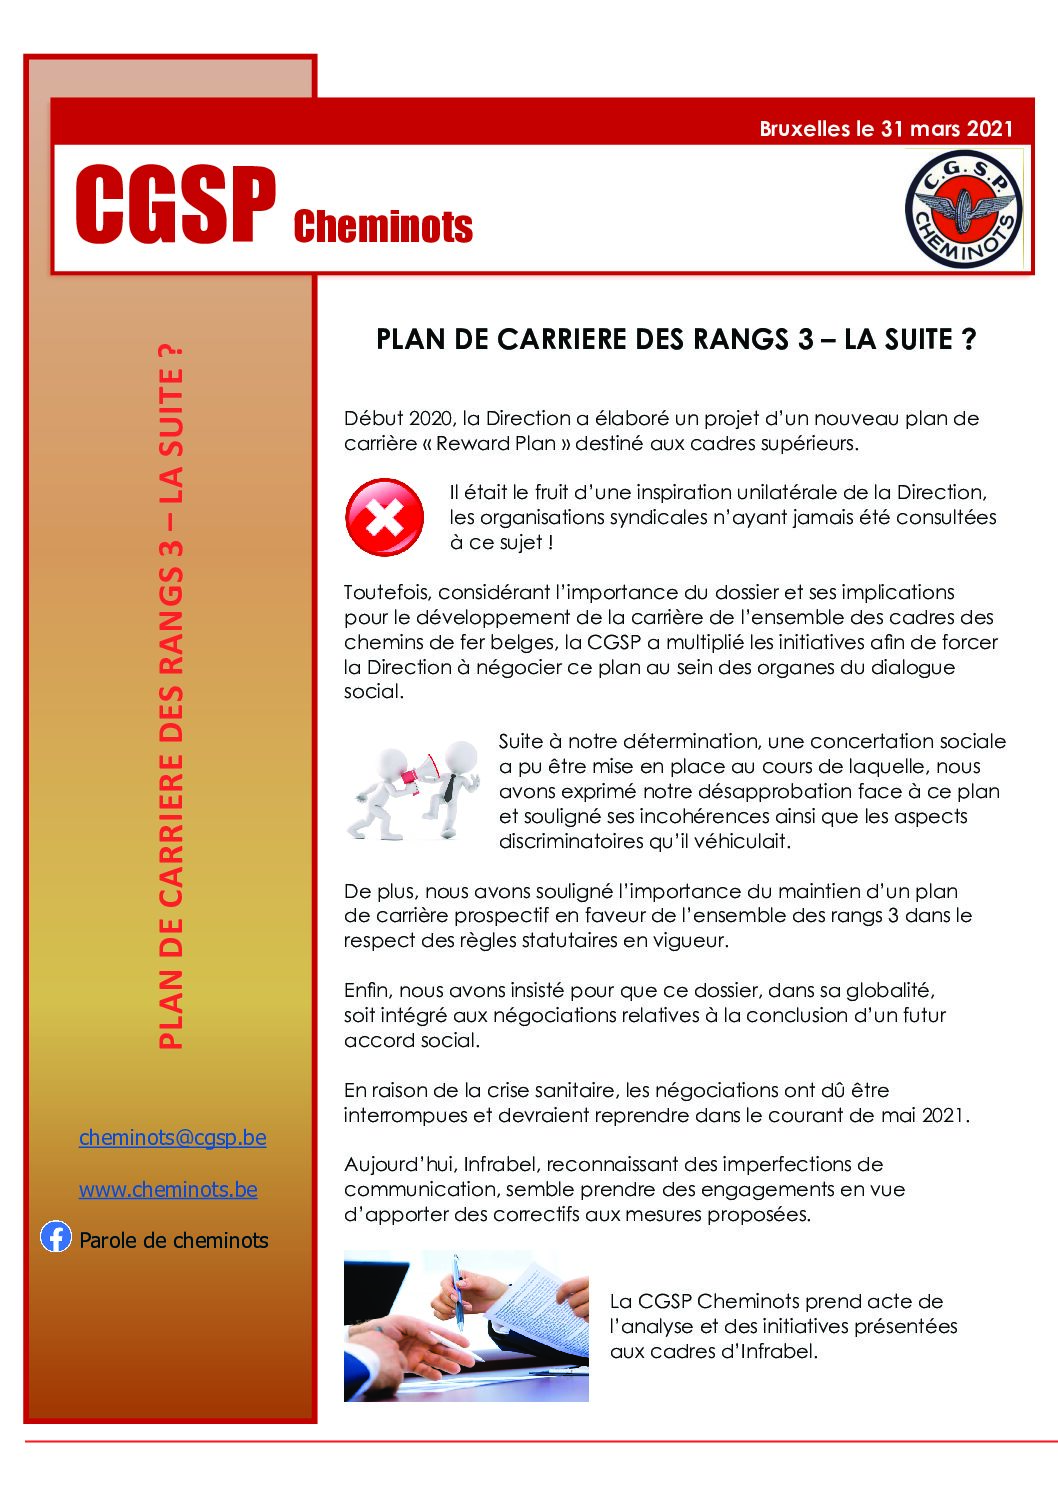 PLAN DE CARRIERE DES RANGS 3 LA SUITE – 31 mars 2021